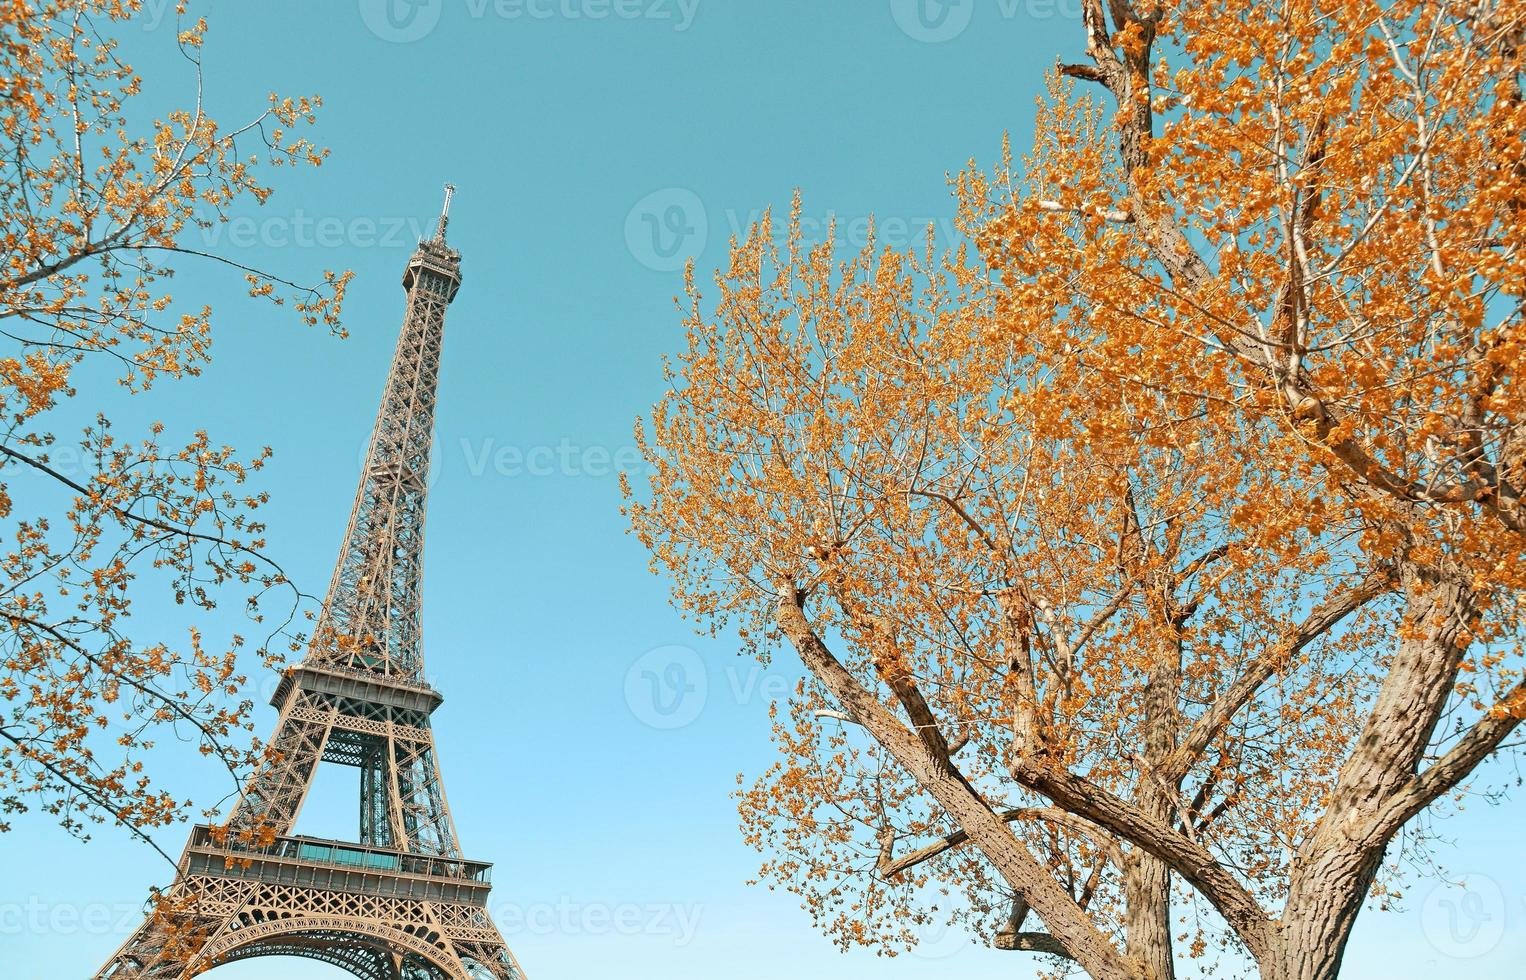 Eiffel tower and golden autumnal trees photo